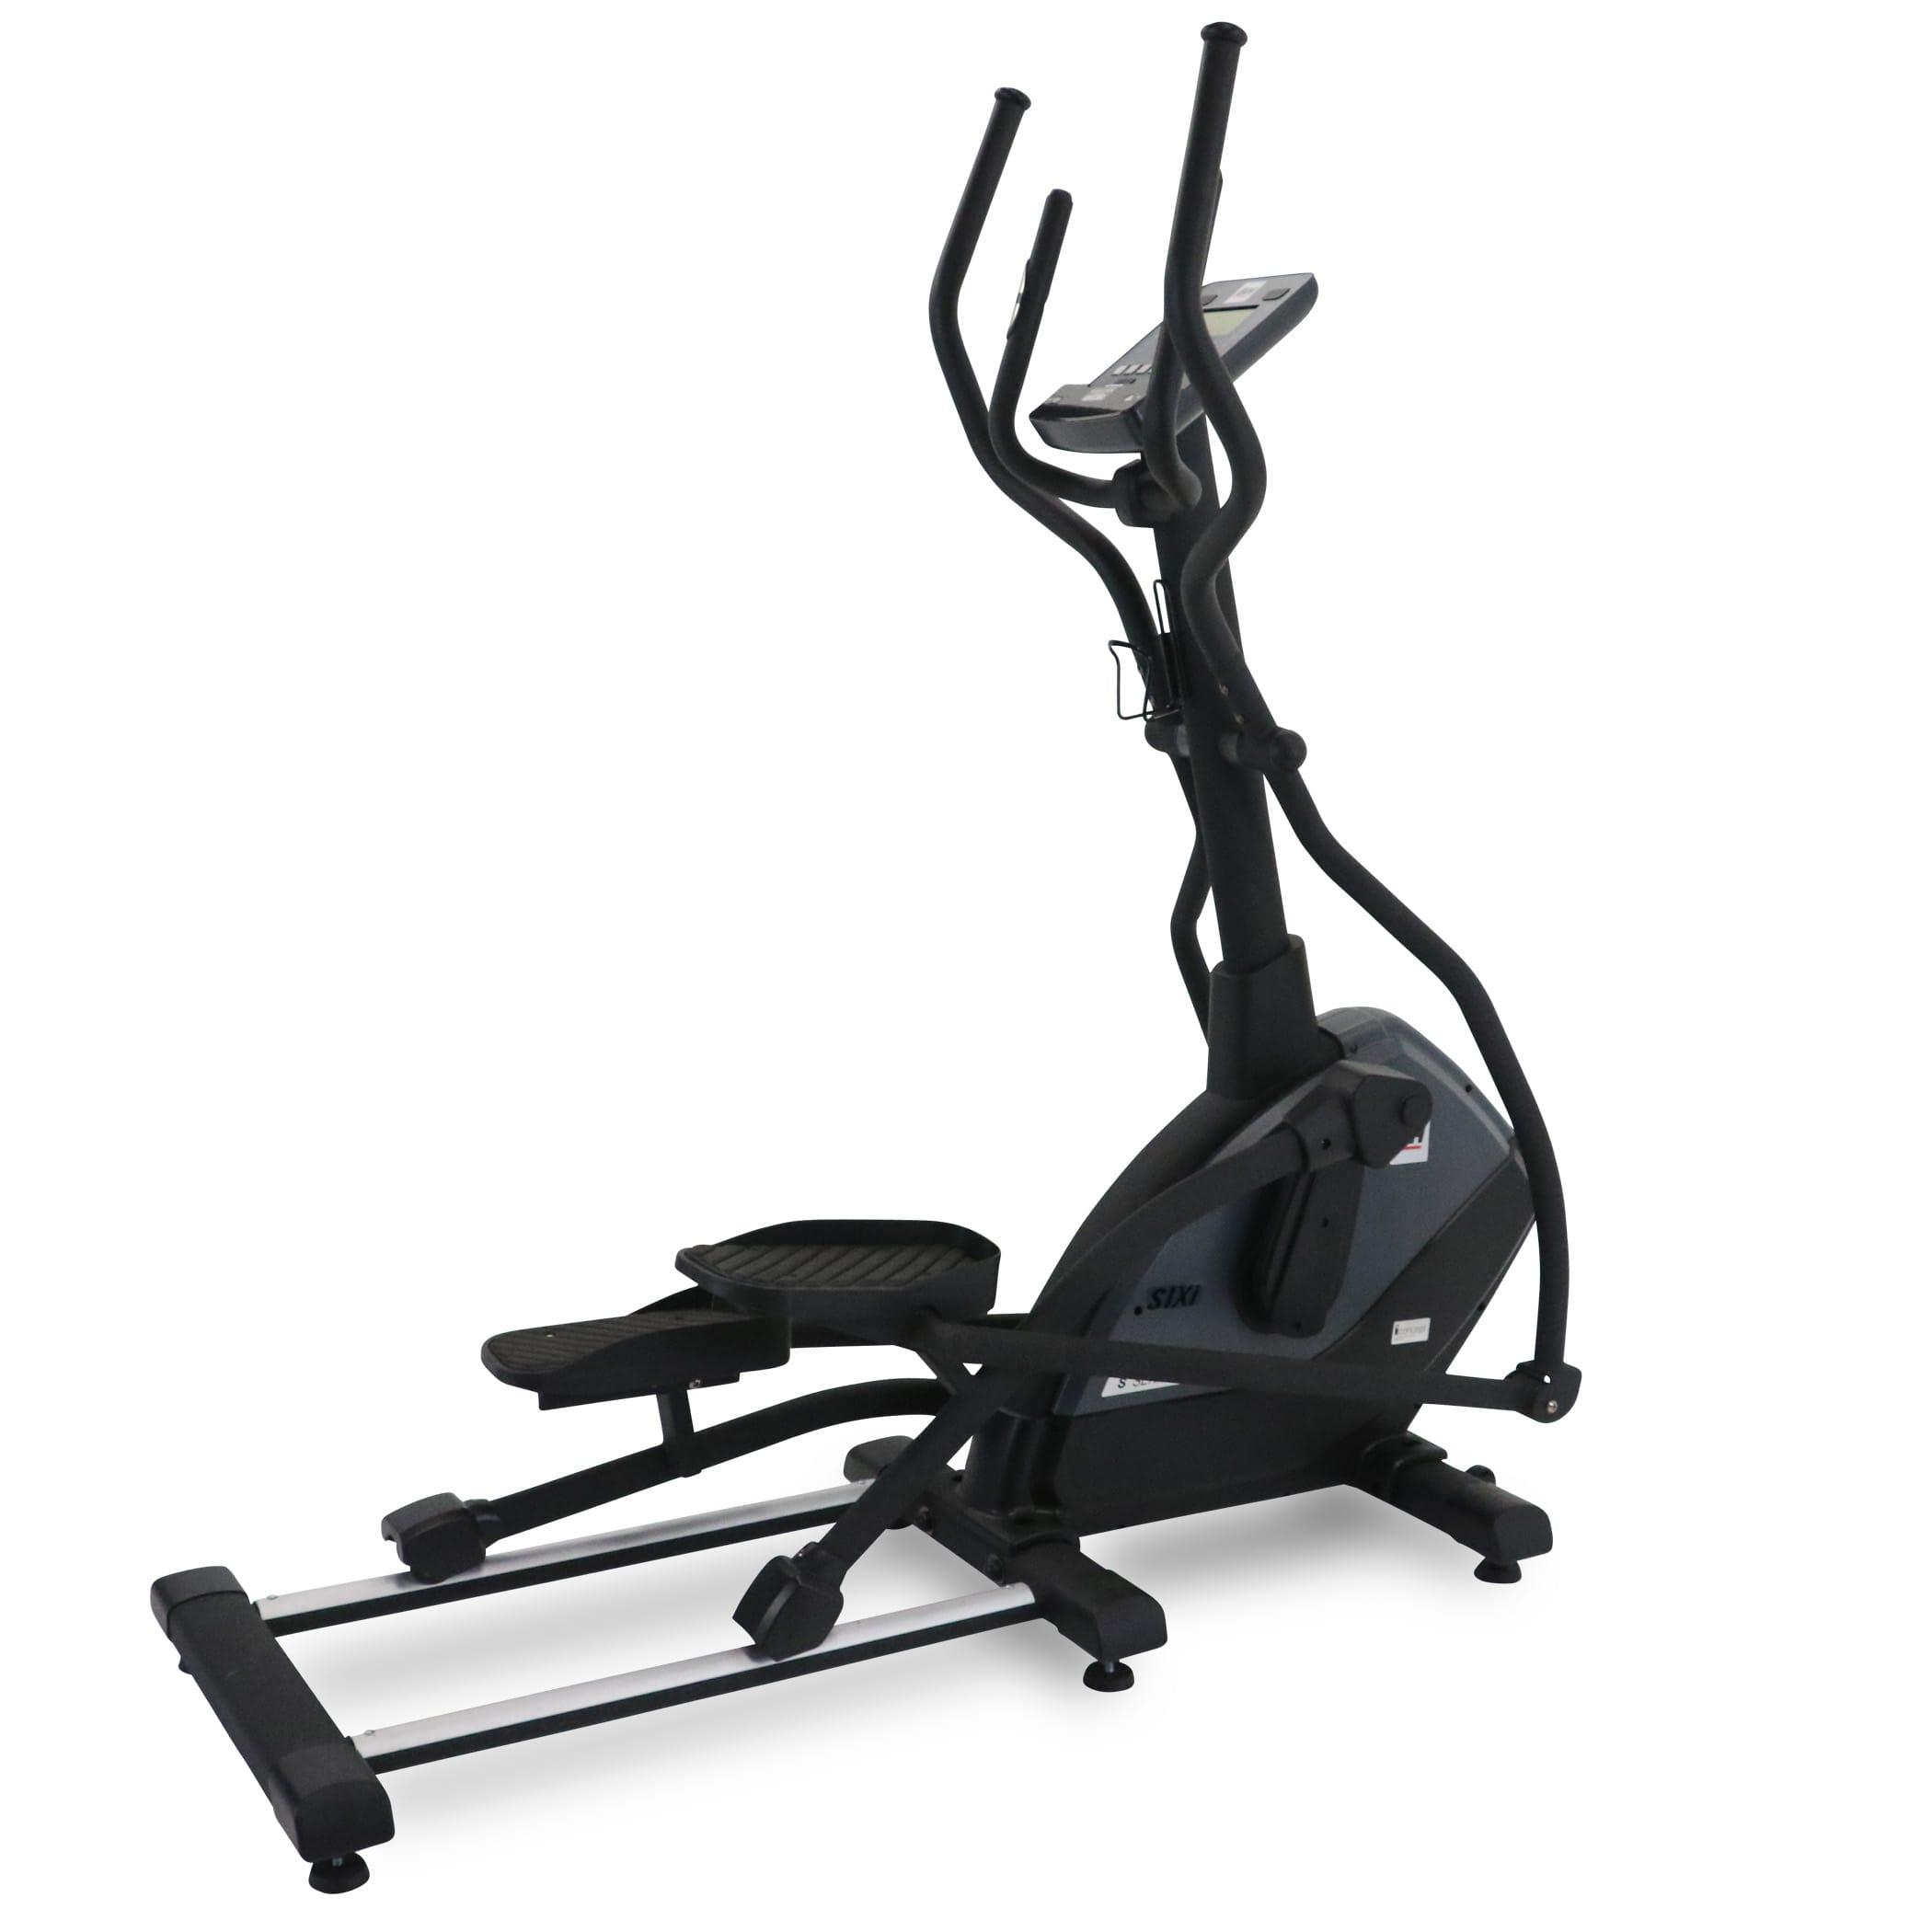 BH Fitness S1Xi Elliptical Machine look fantastic in a full matte black body frame